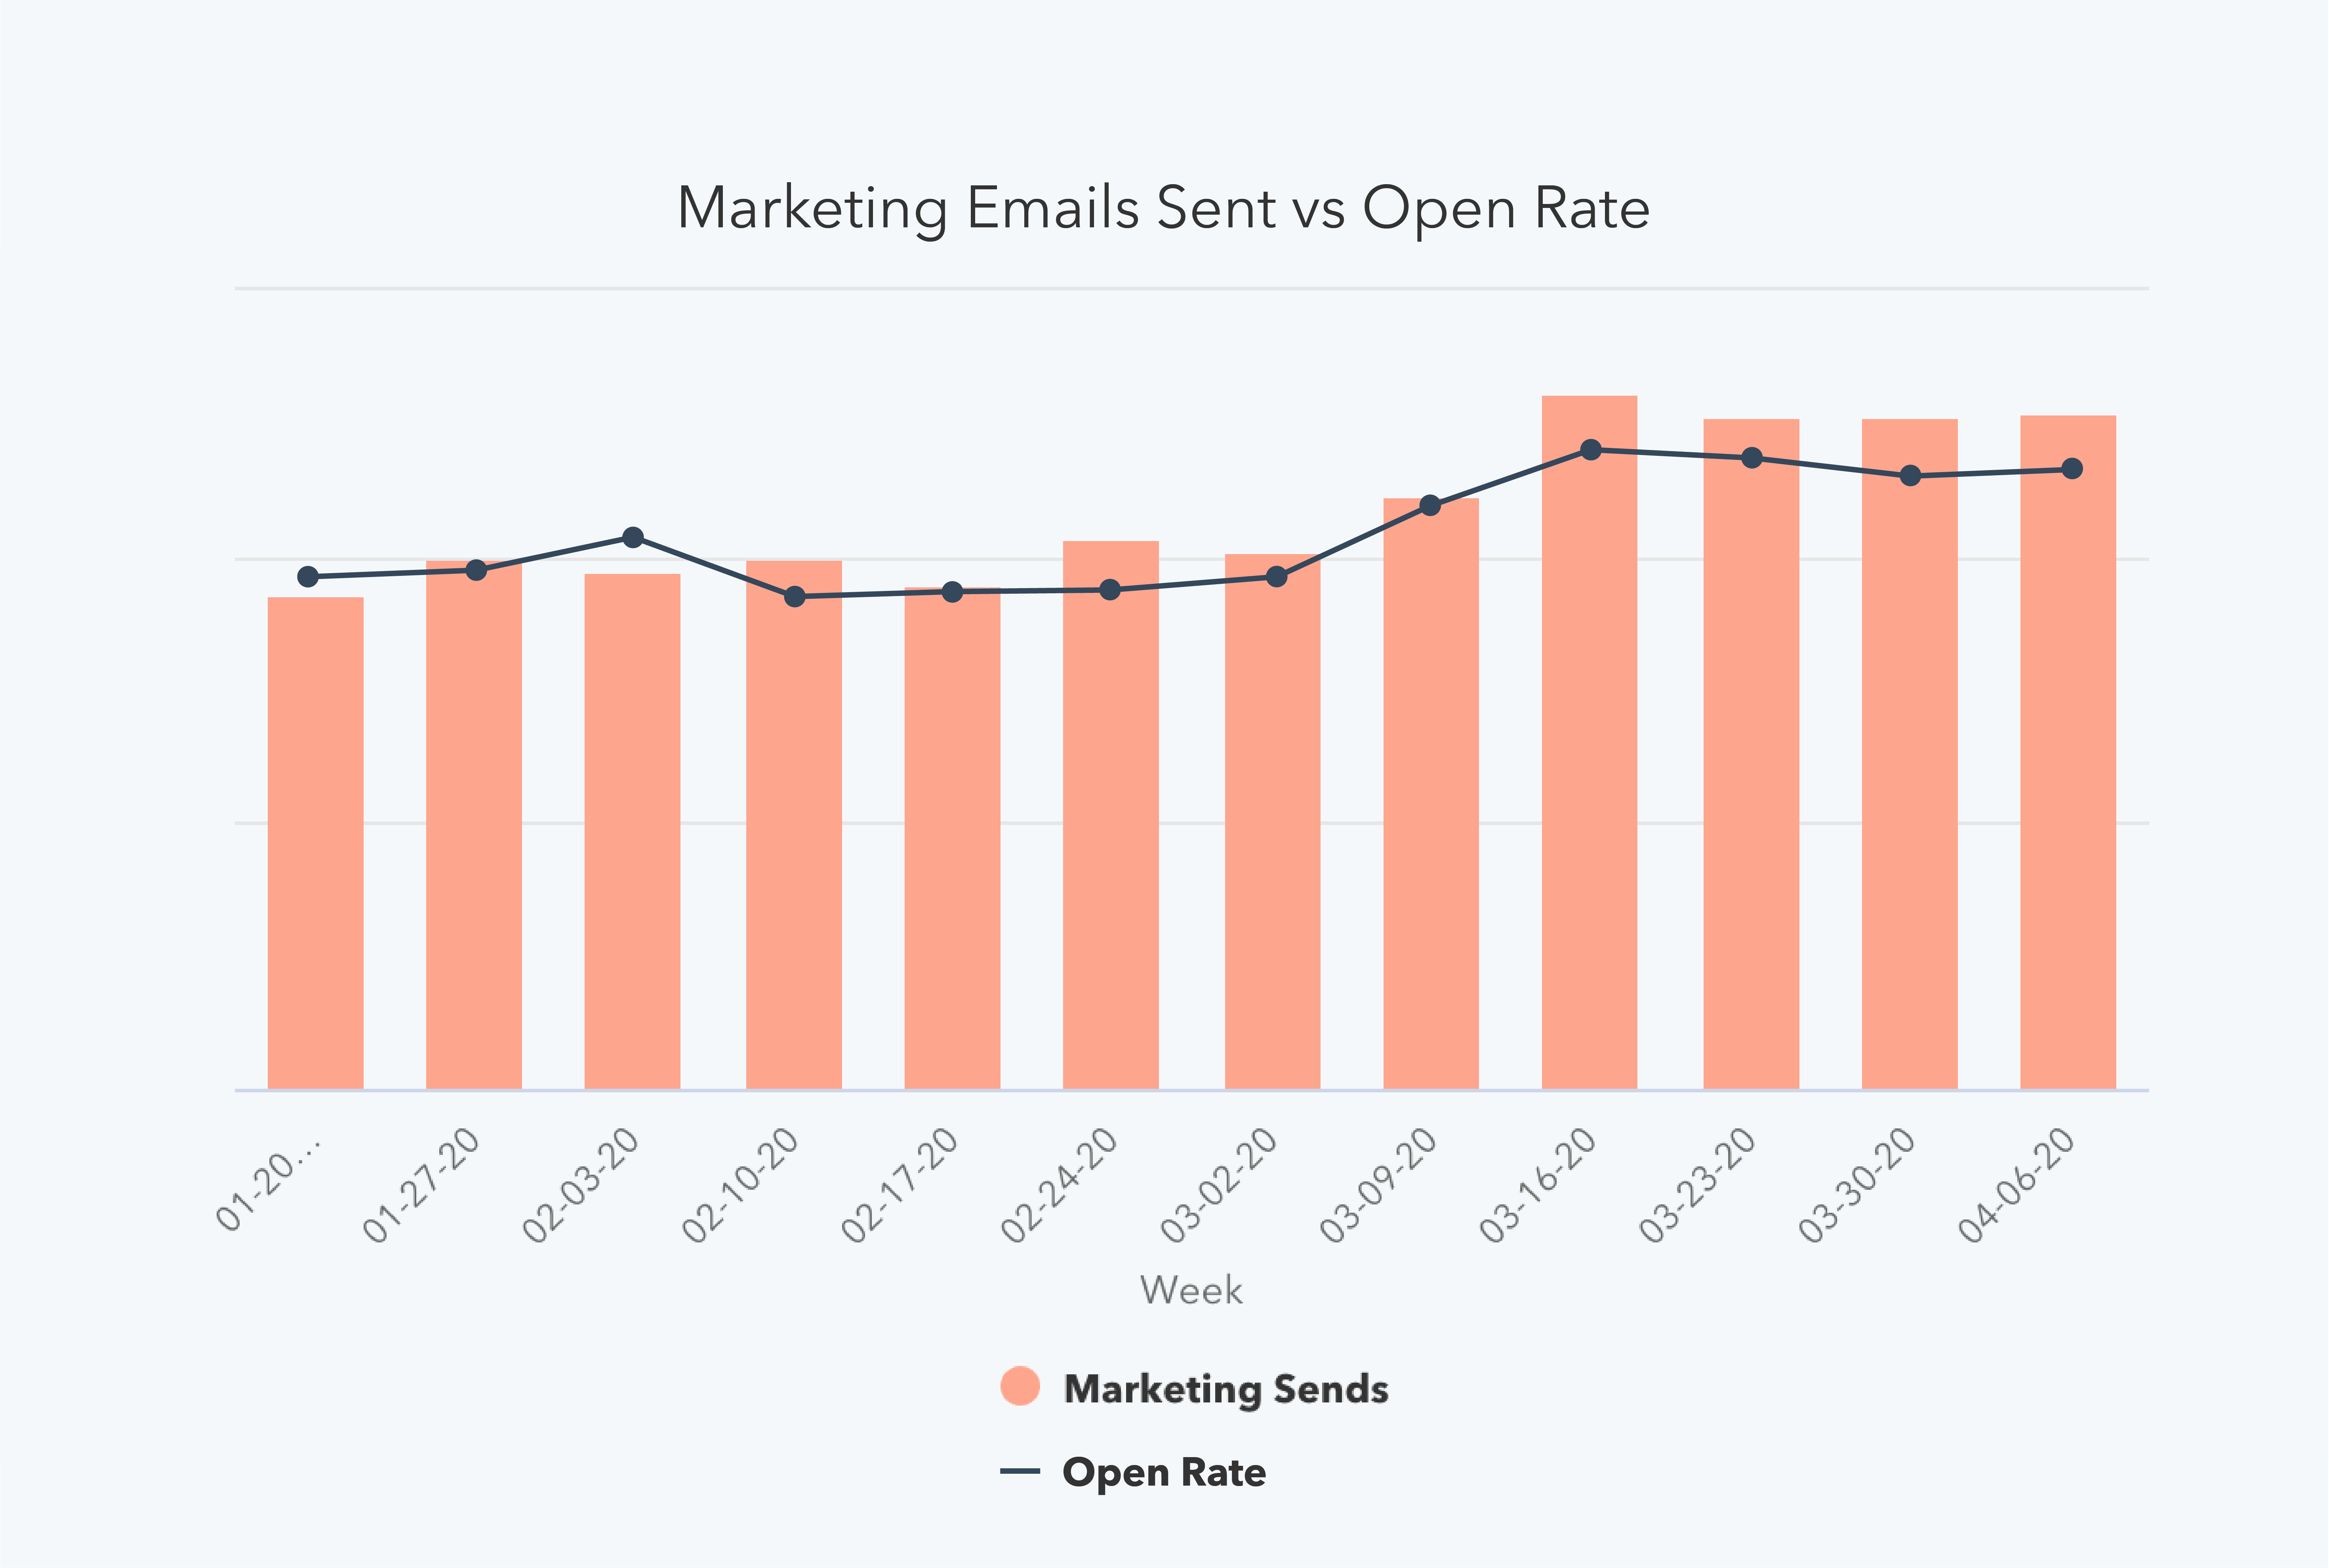 "MarketingEmails ""width ="" 5880 ""style ="" width: 5880px; ""srcset ="" https://blog.hubspot.com/hs-fs/hubfs/COVID-19%20Benchmark%20Data/04-06%20Week/MarketingEmails. png? width = 2940 & name = MarketingEmails.png 2940w, https://blog.hubspot.com/hs-fs/hubfs/COVID-19%20Benchmark%20Data/04-06%20Week/MarketingEmails.png?width=5880&name=MarketingEmails .png 5880w, https://blog.hubspot.com/hs-fs/hubfs/COVID-19%20Benchmark%20Data/04-06%20Week/MarketingEmails.png?width=8820&name=MarketingEmails.png 8820w, https: / /blog.hubspot.com/hs-fs/hubfs/COVID-19%20Benchmark%20Data/04-06%20Week/MarketingEmails.png?width=11760&name=MarketingEmails.png 11760w, https://blog.hubspot.com/ hs-fs / hubfs / COVID-19% 20Benchmark% 20Data / 04-06% 20Week / MarketingEmails.png? width = 14700 & name = MarketingEmails.png 14700w, https://blog.hubspot.com/hs-fs/hubfs/COVID -19% 20Benchmark% 20Data / 04-06% 20Week / MarketingEmails.png? Larghezza = 17640 e nome = MarketingEmails.png 17640w ""dimensioni ="" (larghezza massima: 5880px) 100vw, 5880px"